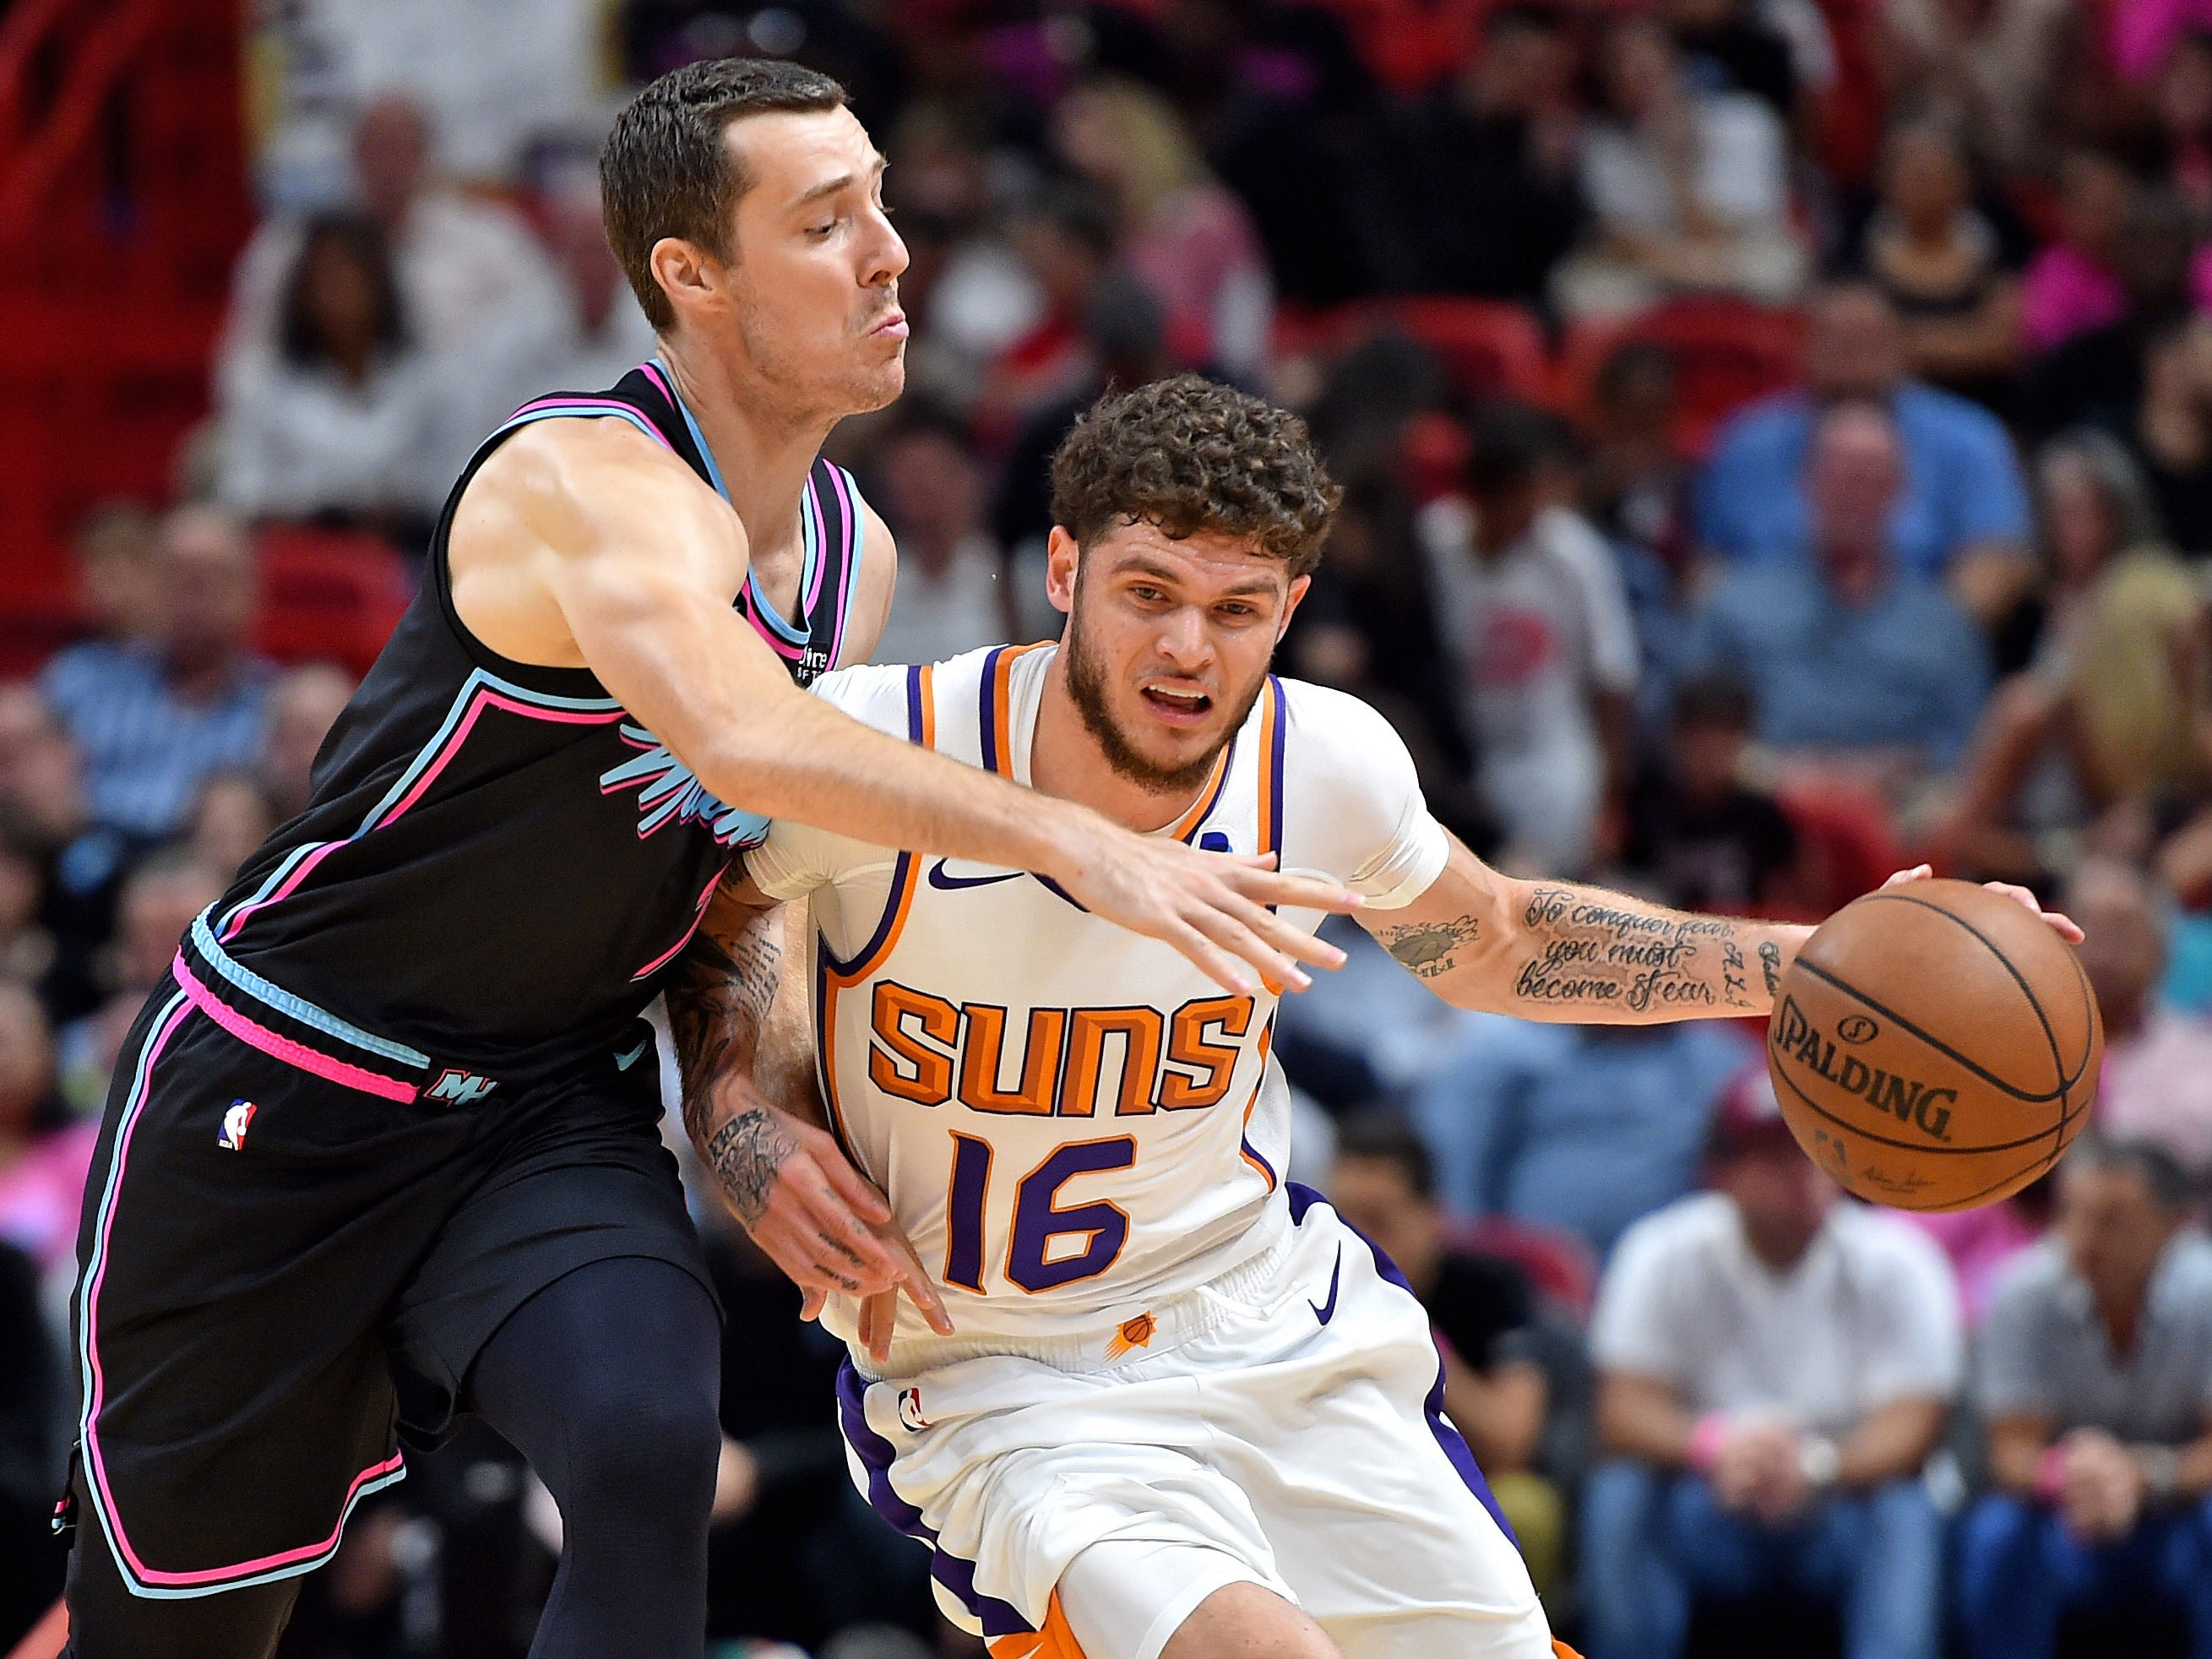 Feb 25, 2019; Miami, FL, USA; Phoenix Suns guard Tyler Johnson (16) is guarded by Miami Heat guard Goran Dragic (7) during the first half at American Airlines Arena. Mandatory Credit: Steve Mitchell-USA TODAY Sports